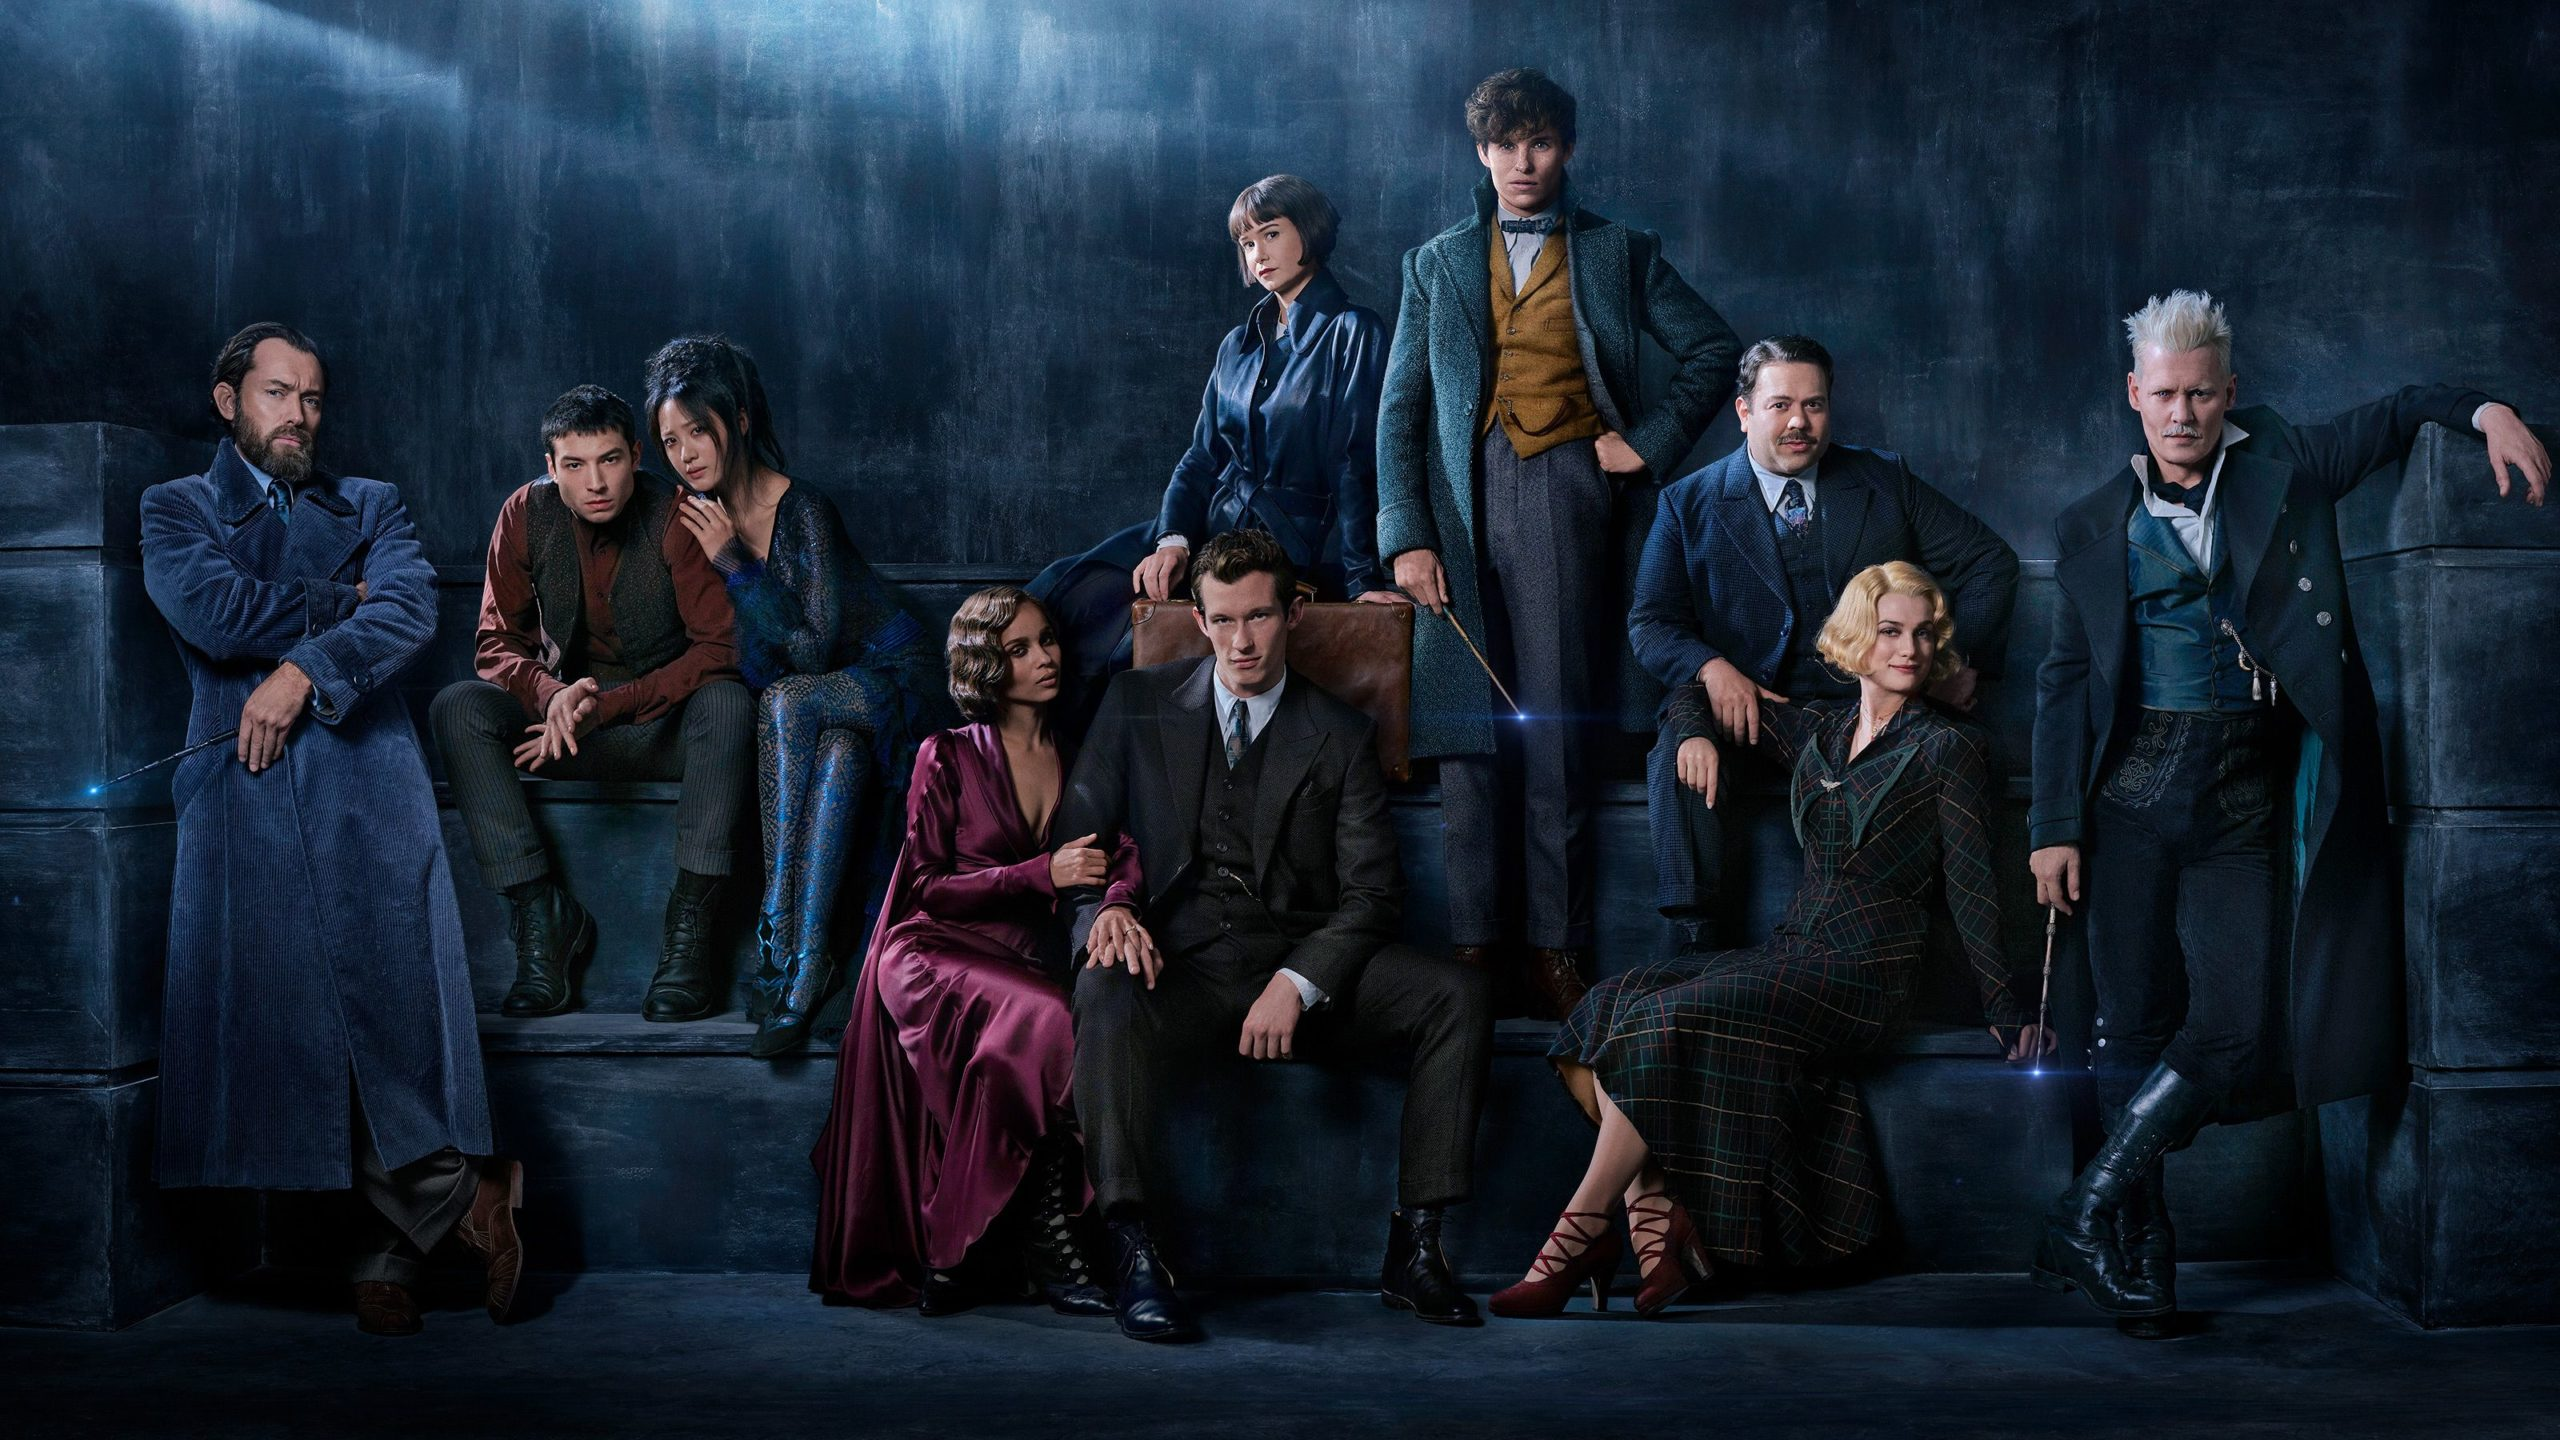 Fantastic Beasts 3 Plot Spoilers and Cast Details